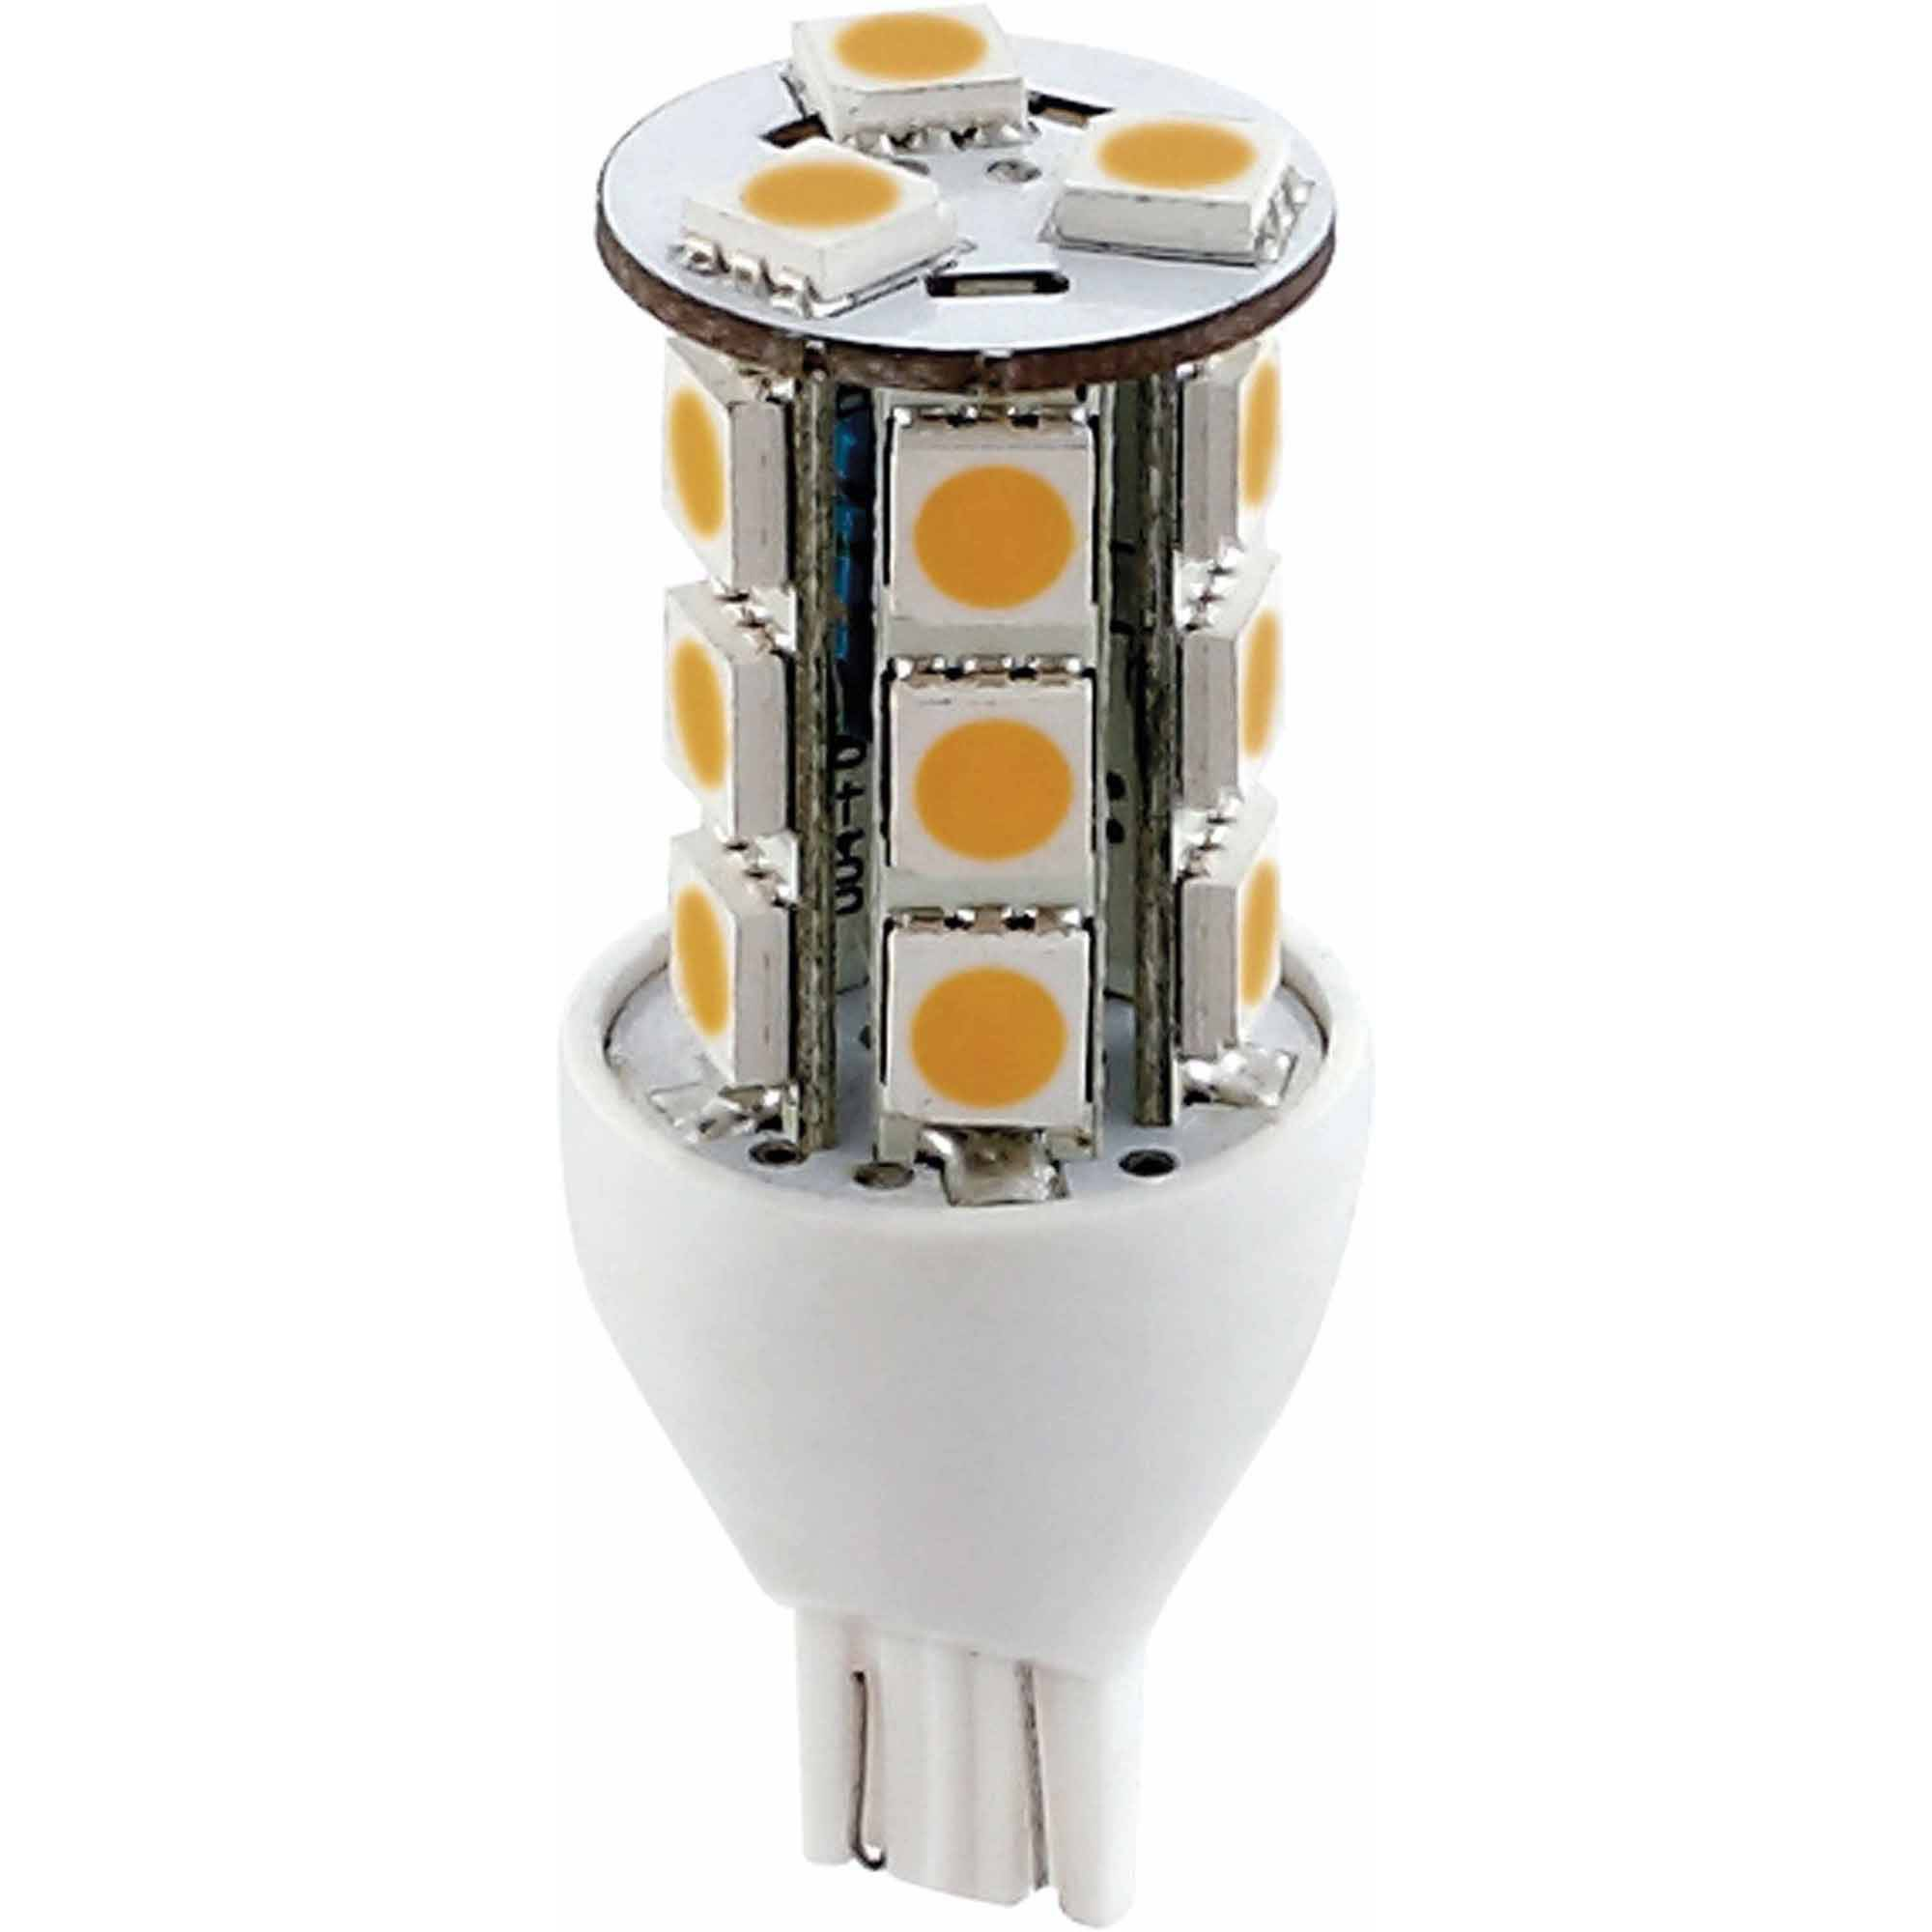 Green LongLife 12V LED Light Bulb Tower with 921/T15 Wedge Base, 200 Lumens, Natural White